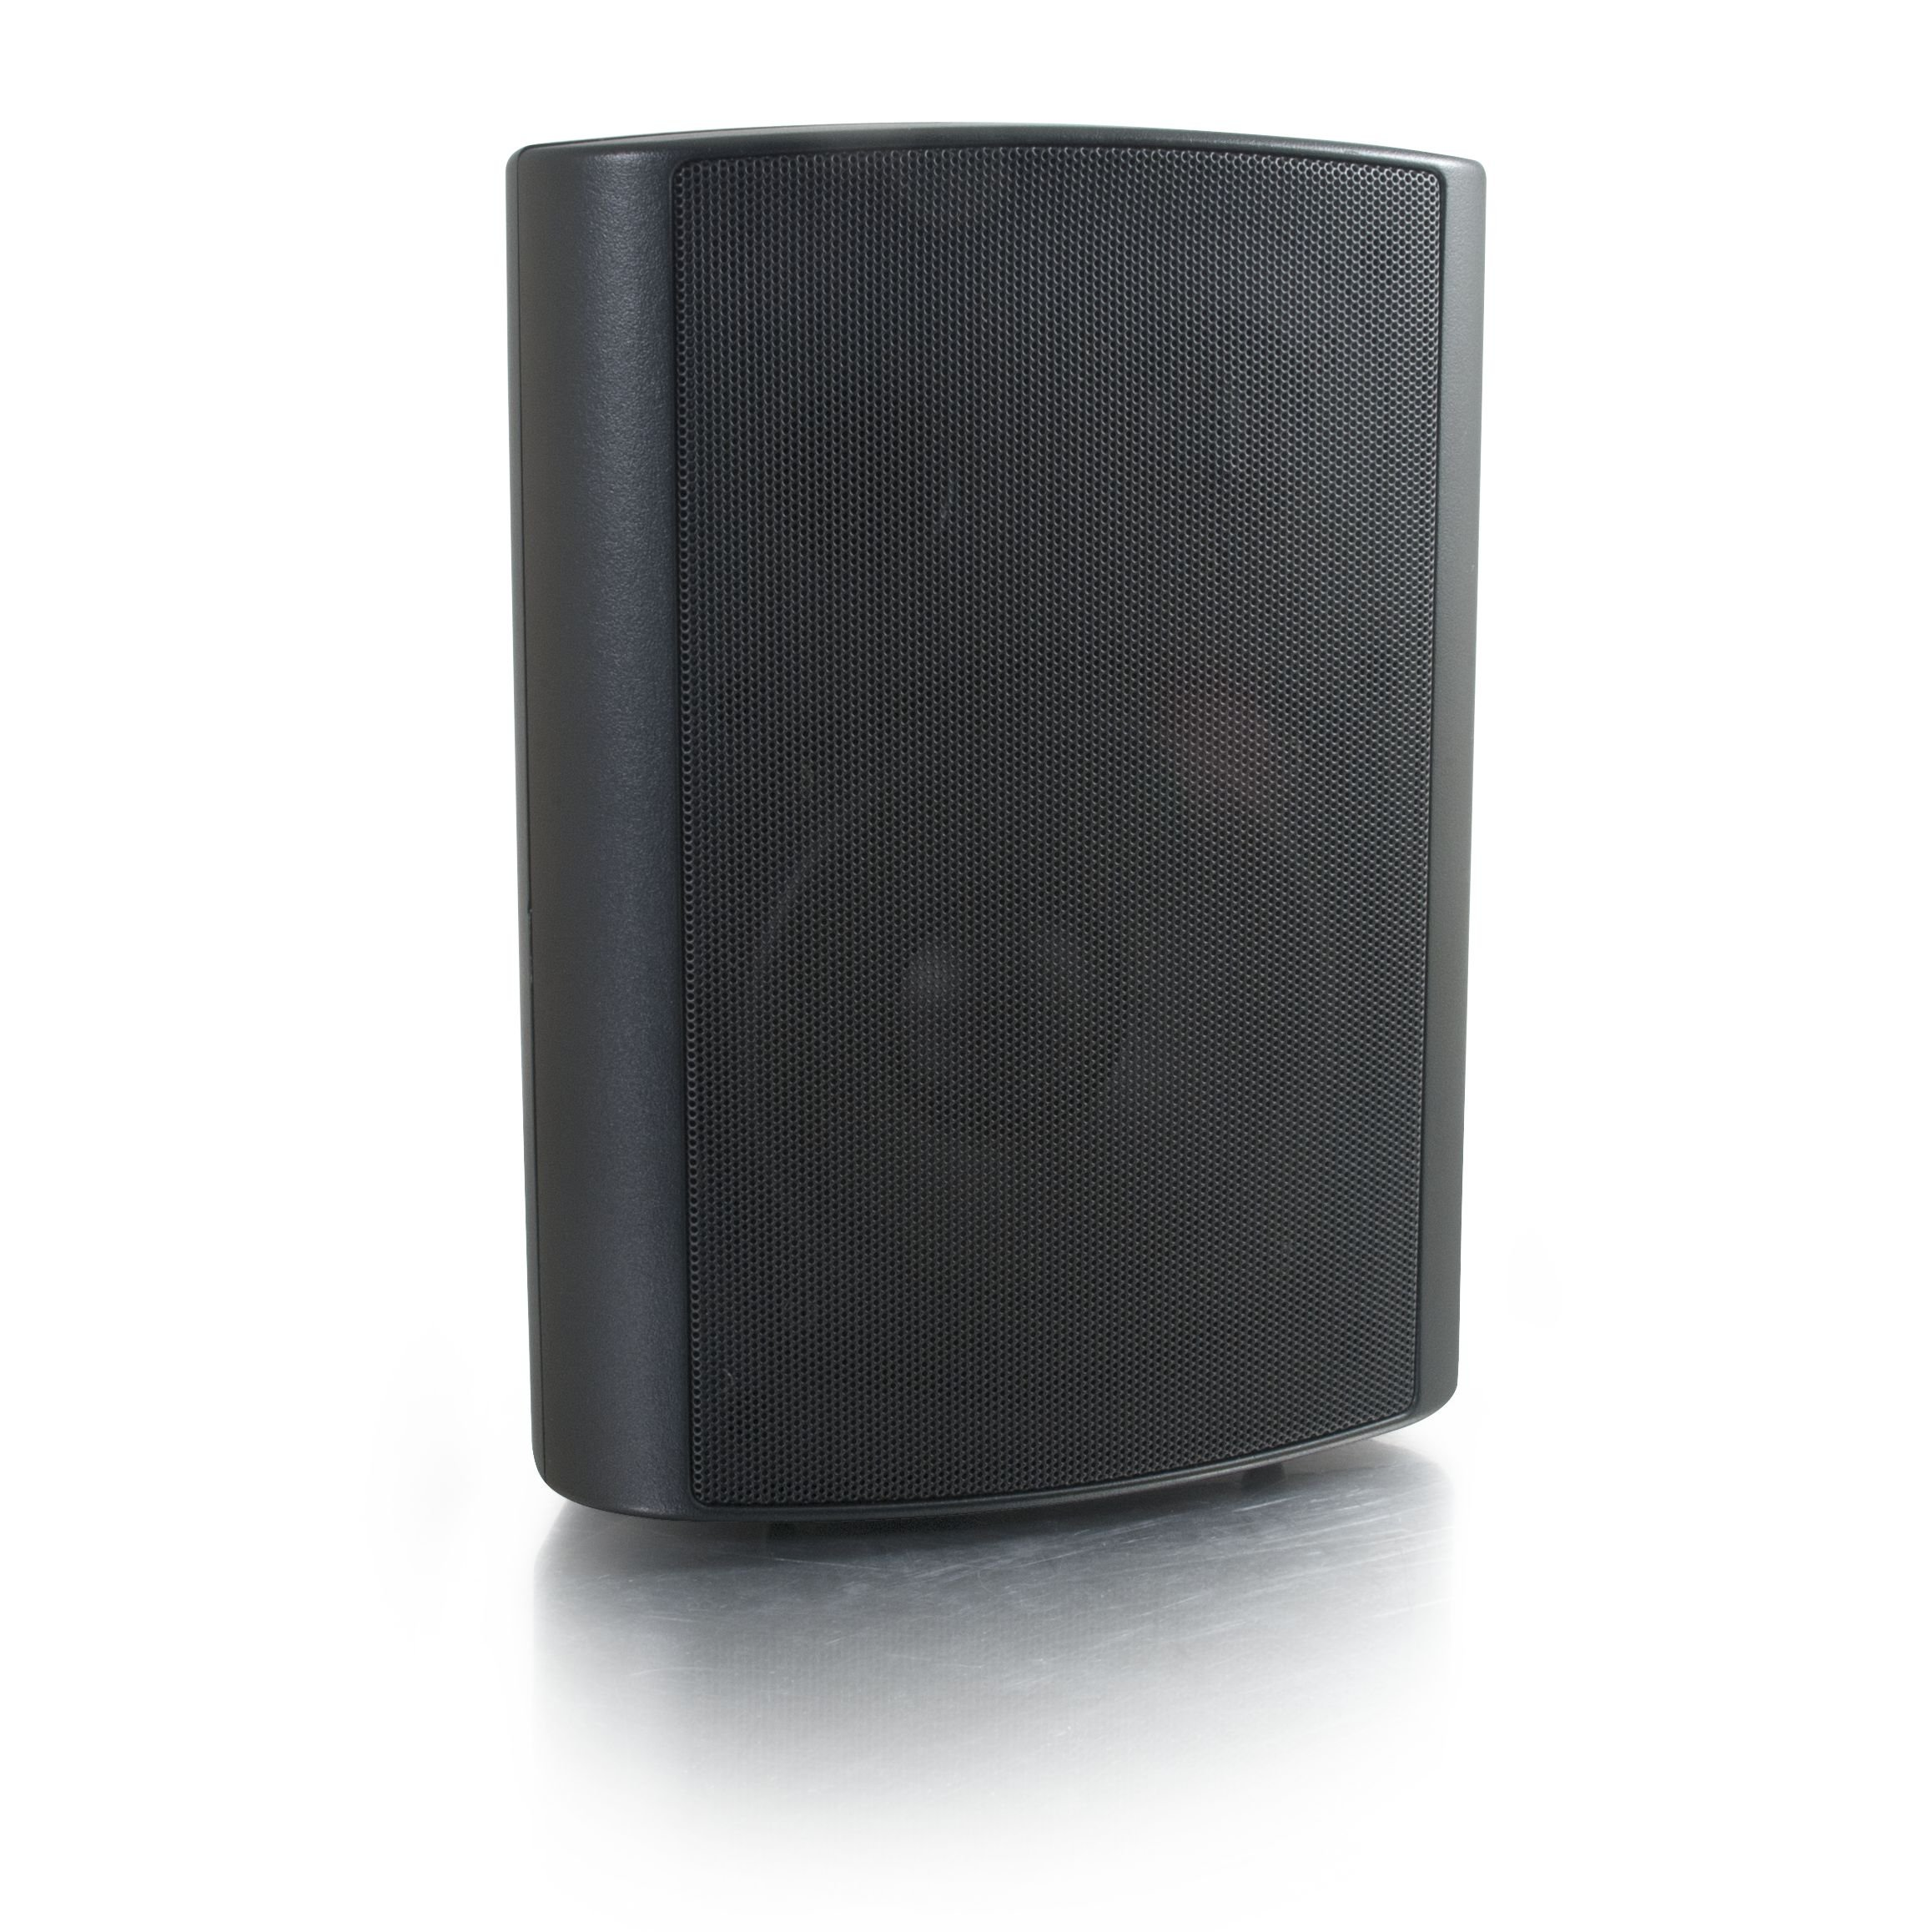 C2G/Cables to Go 39908 Wall Mount Speaker 70V, Black (5 Inch)